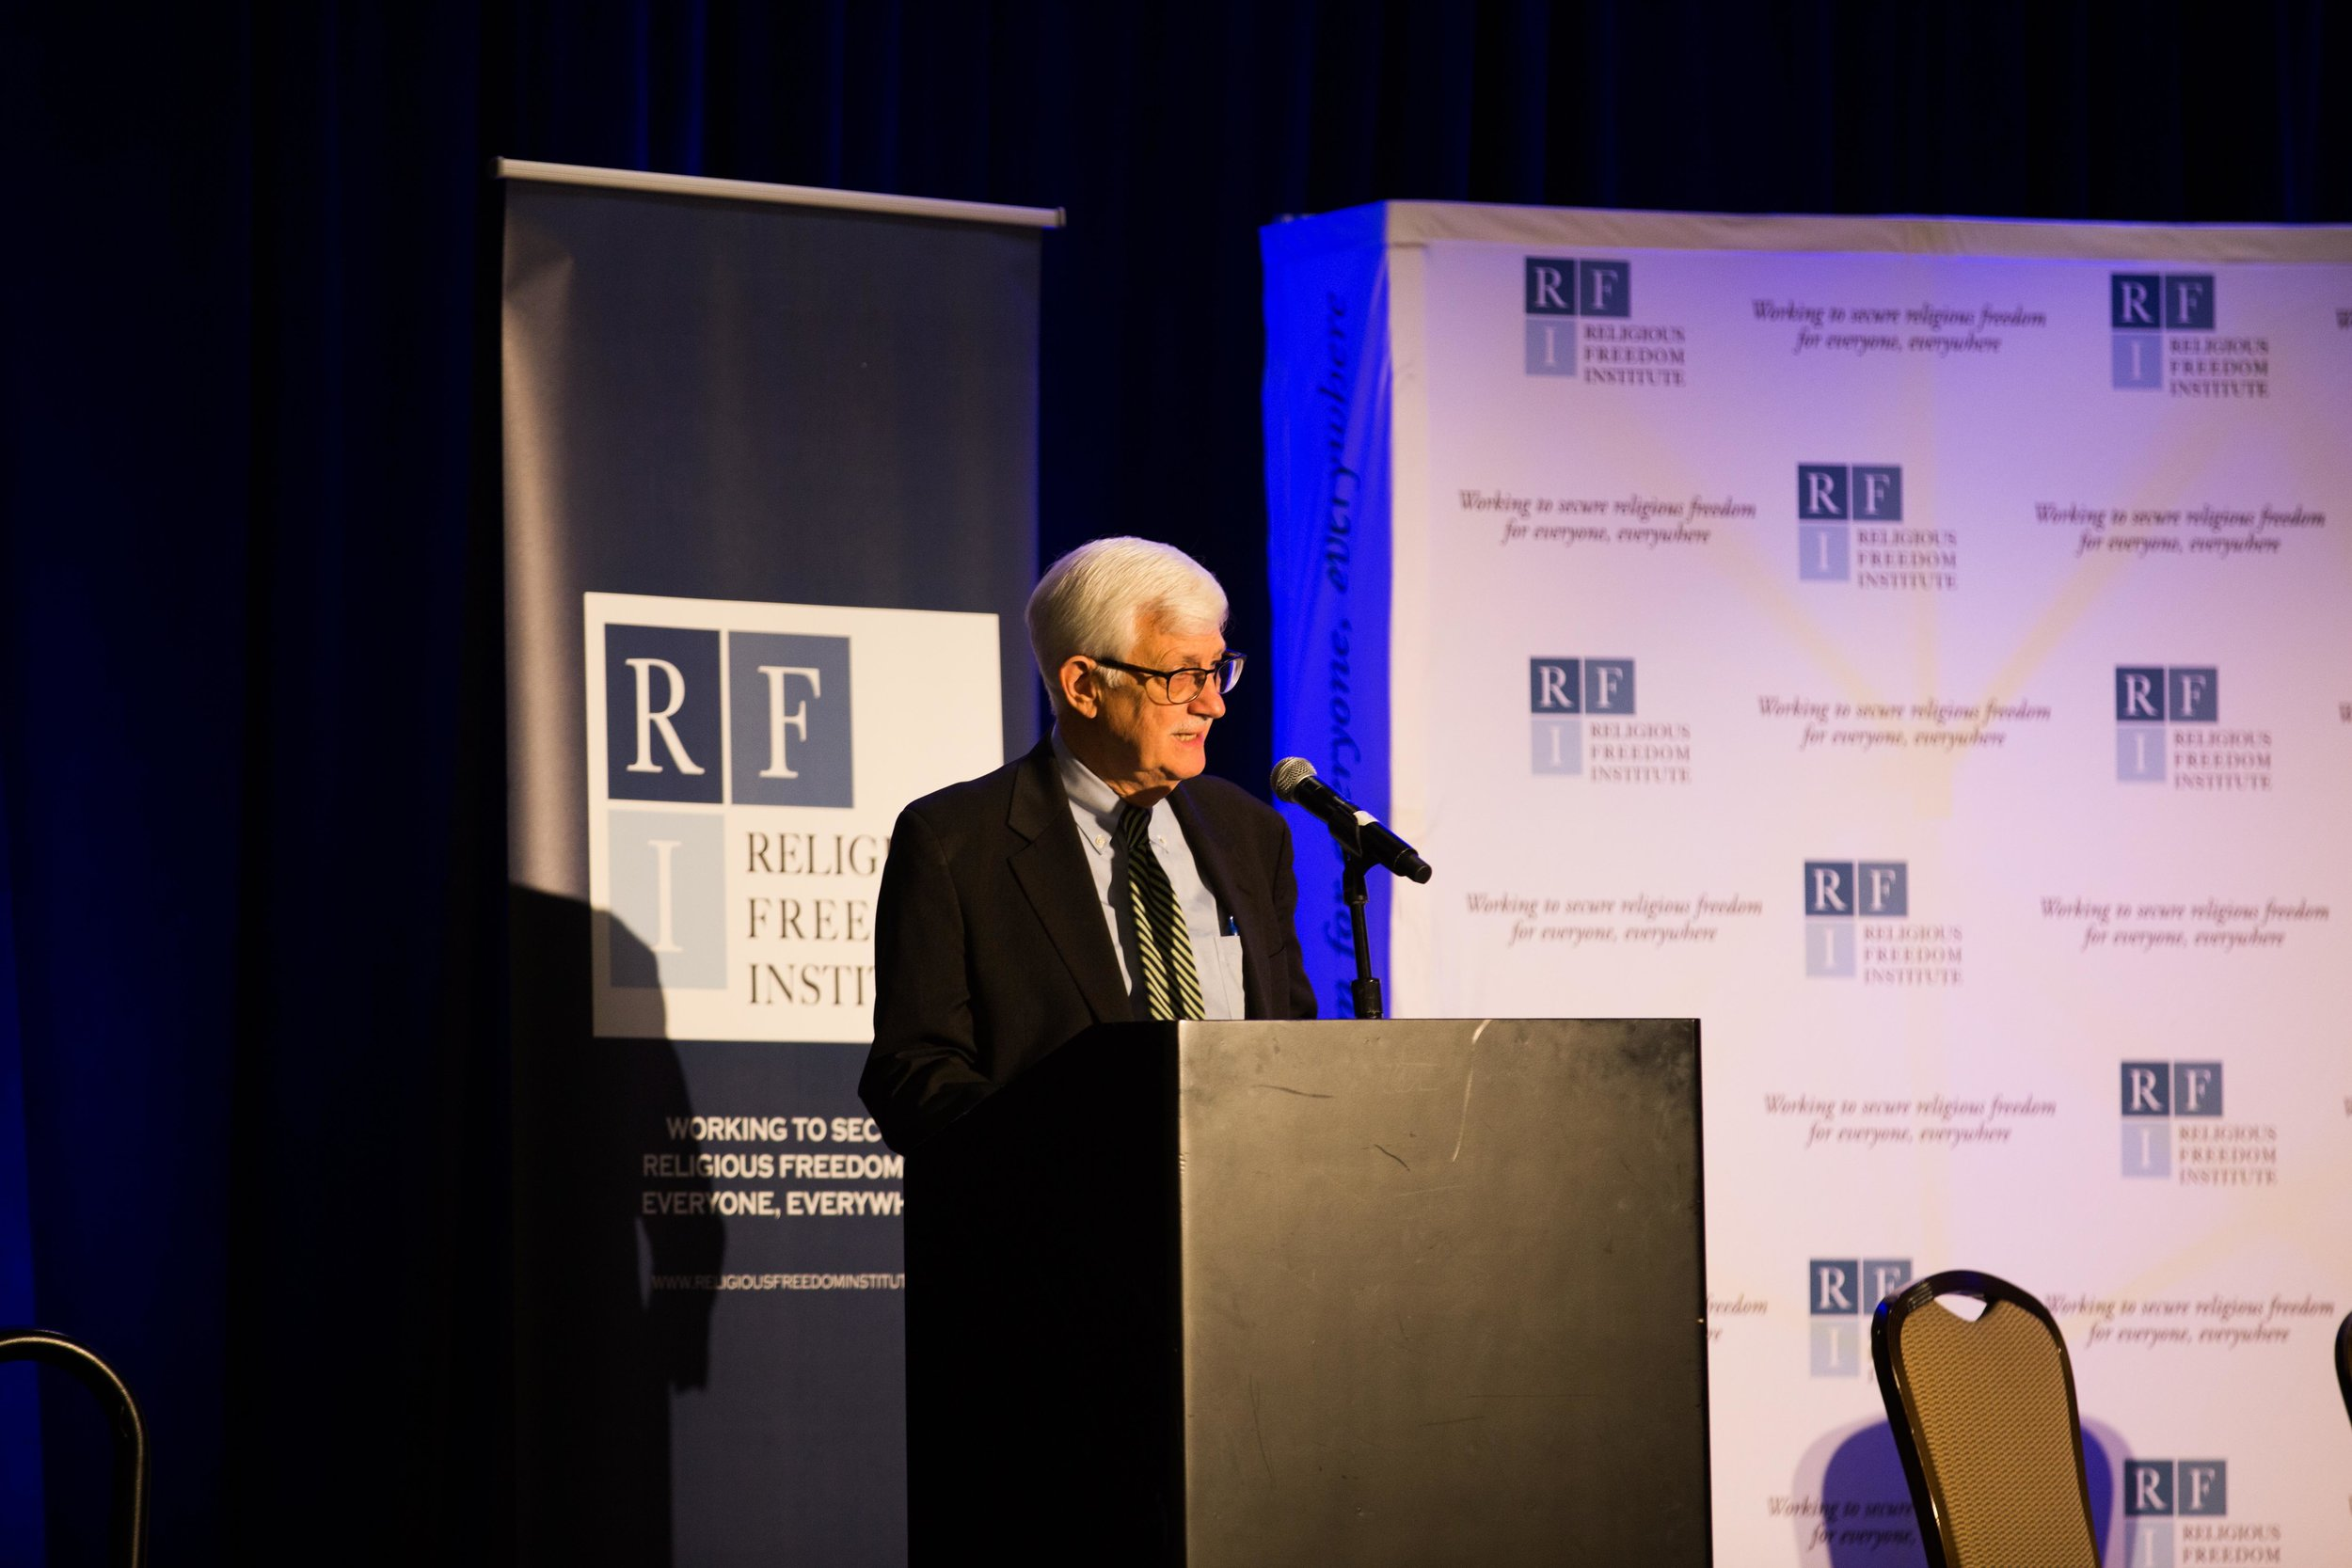 Thomas Farr, President, Religious Freedom Institute gives opening remarks. Photo: RFI/Margaret Wroblewski